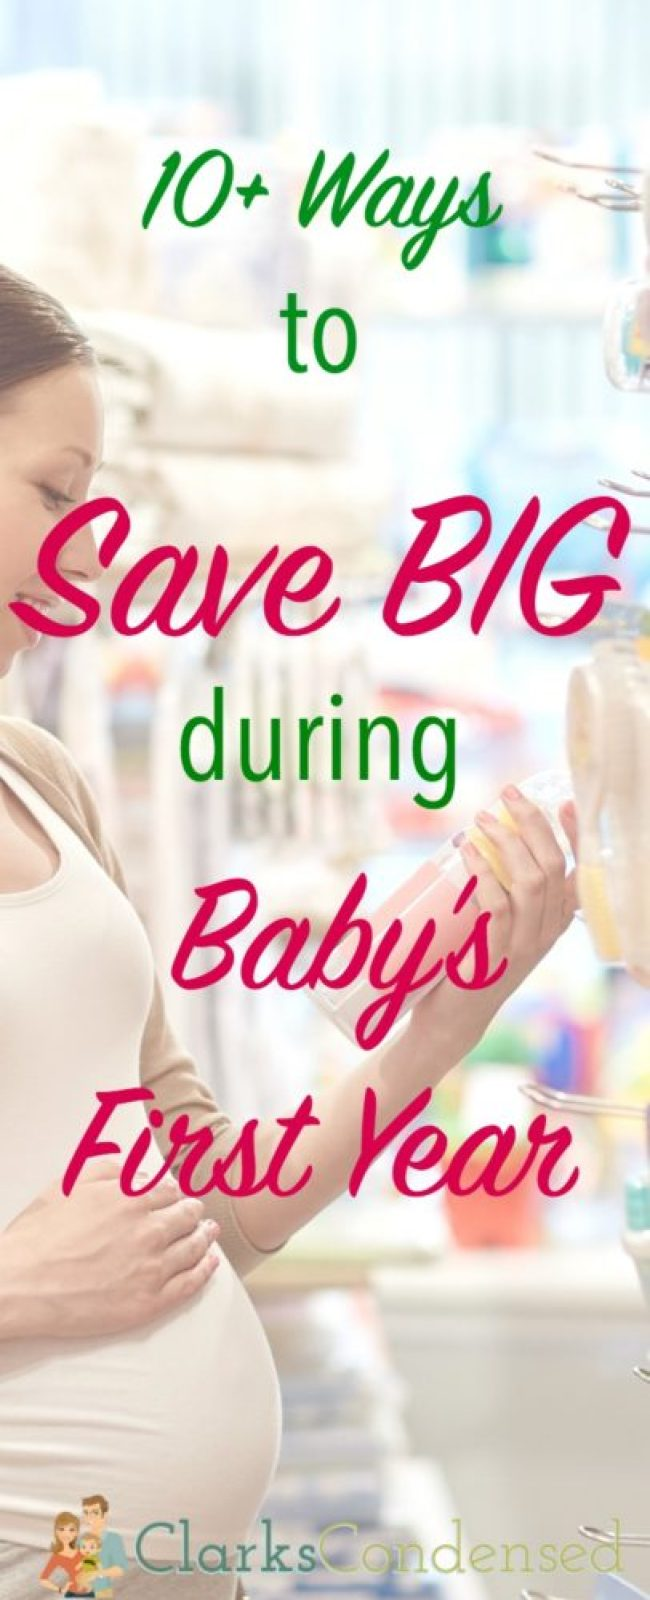 save-big-during-babys-first-year